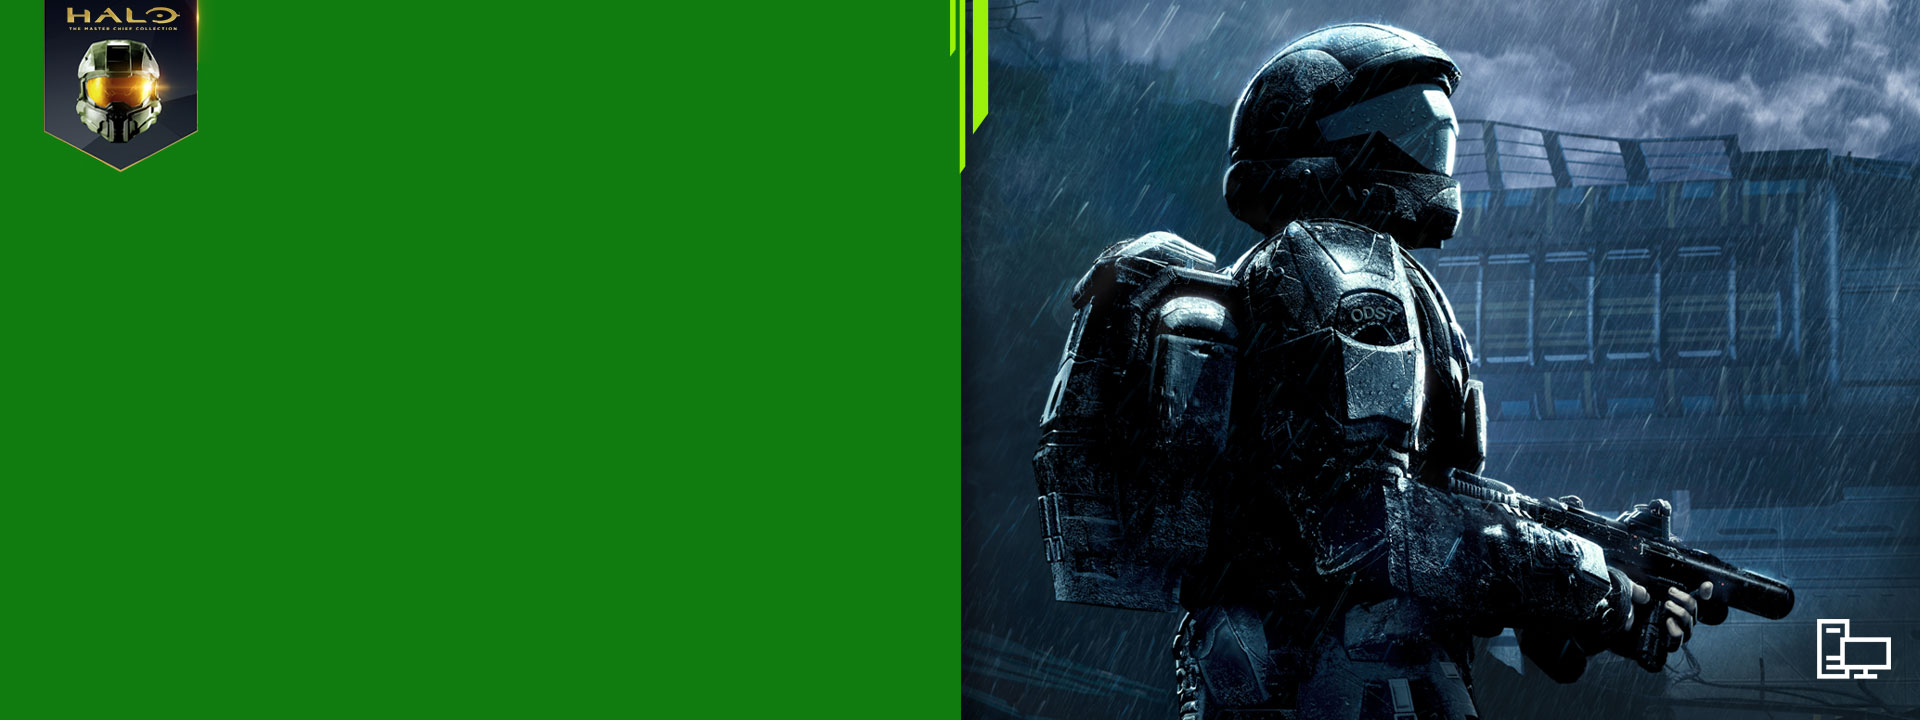 Een ODST-trooper houdt een smg in de regen op New Mombasa. Xbox Game Pass-logo, pc-pictogram, Halo-badge